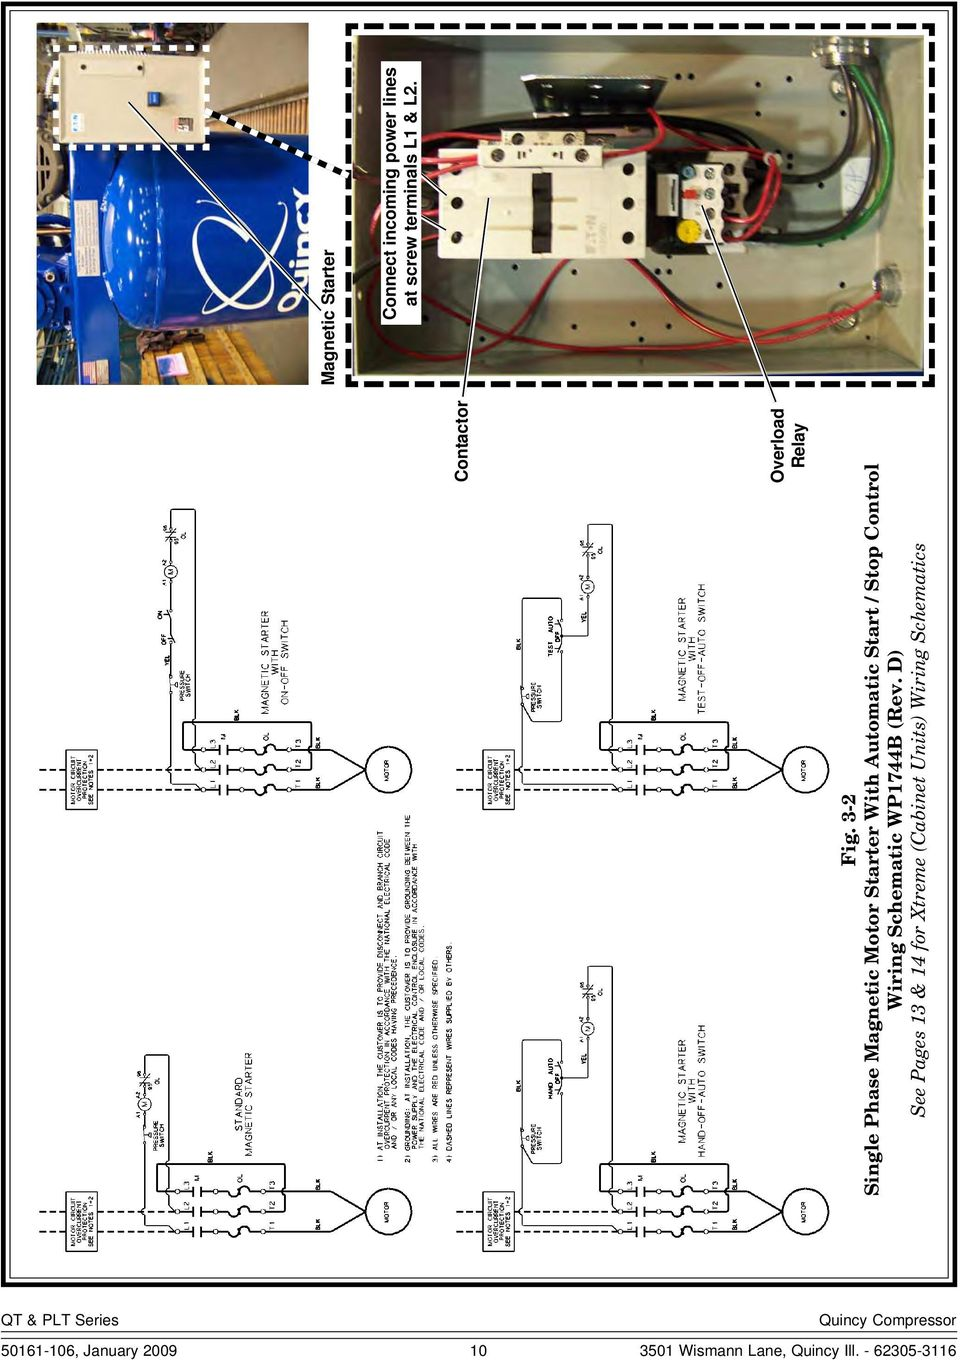 2 Stage Compressors Instruction Manual Pdf With Start Stop Switch Motor Wiring Diagram Schematic Wp1744b Rev